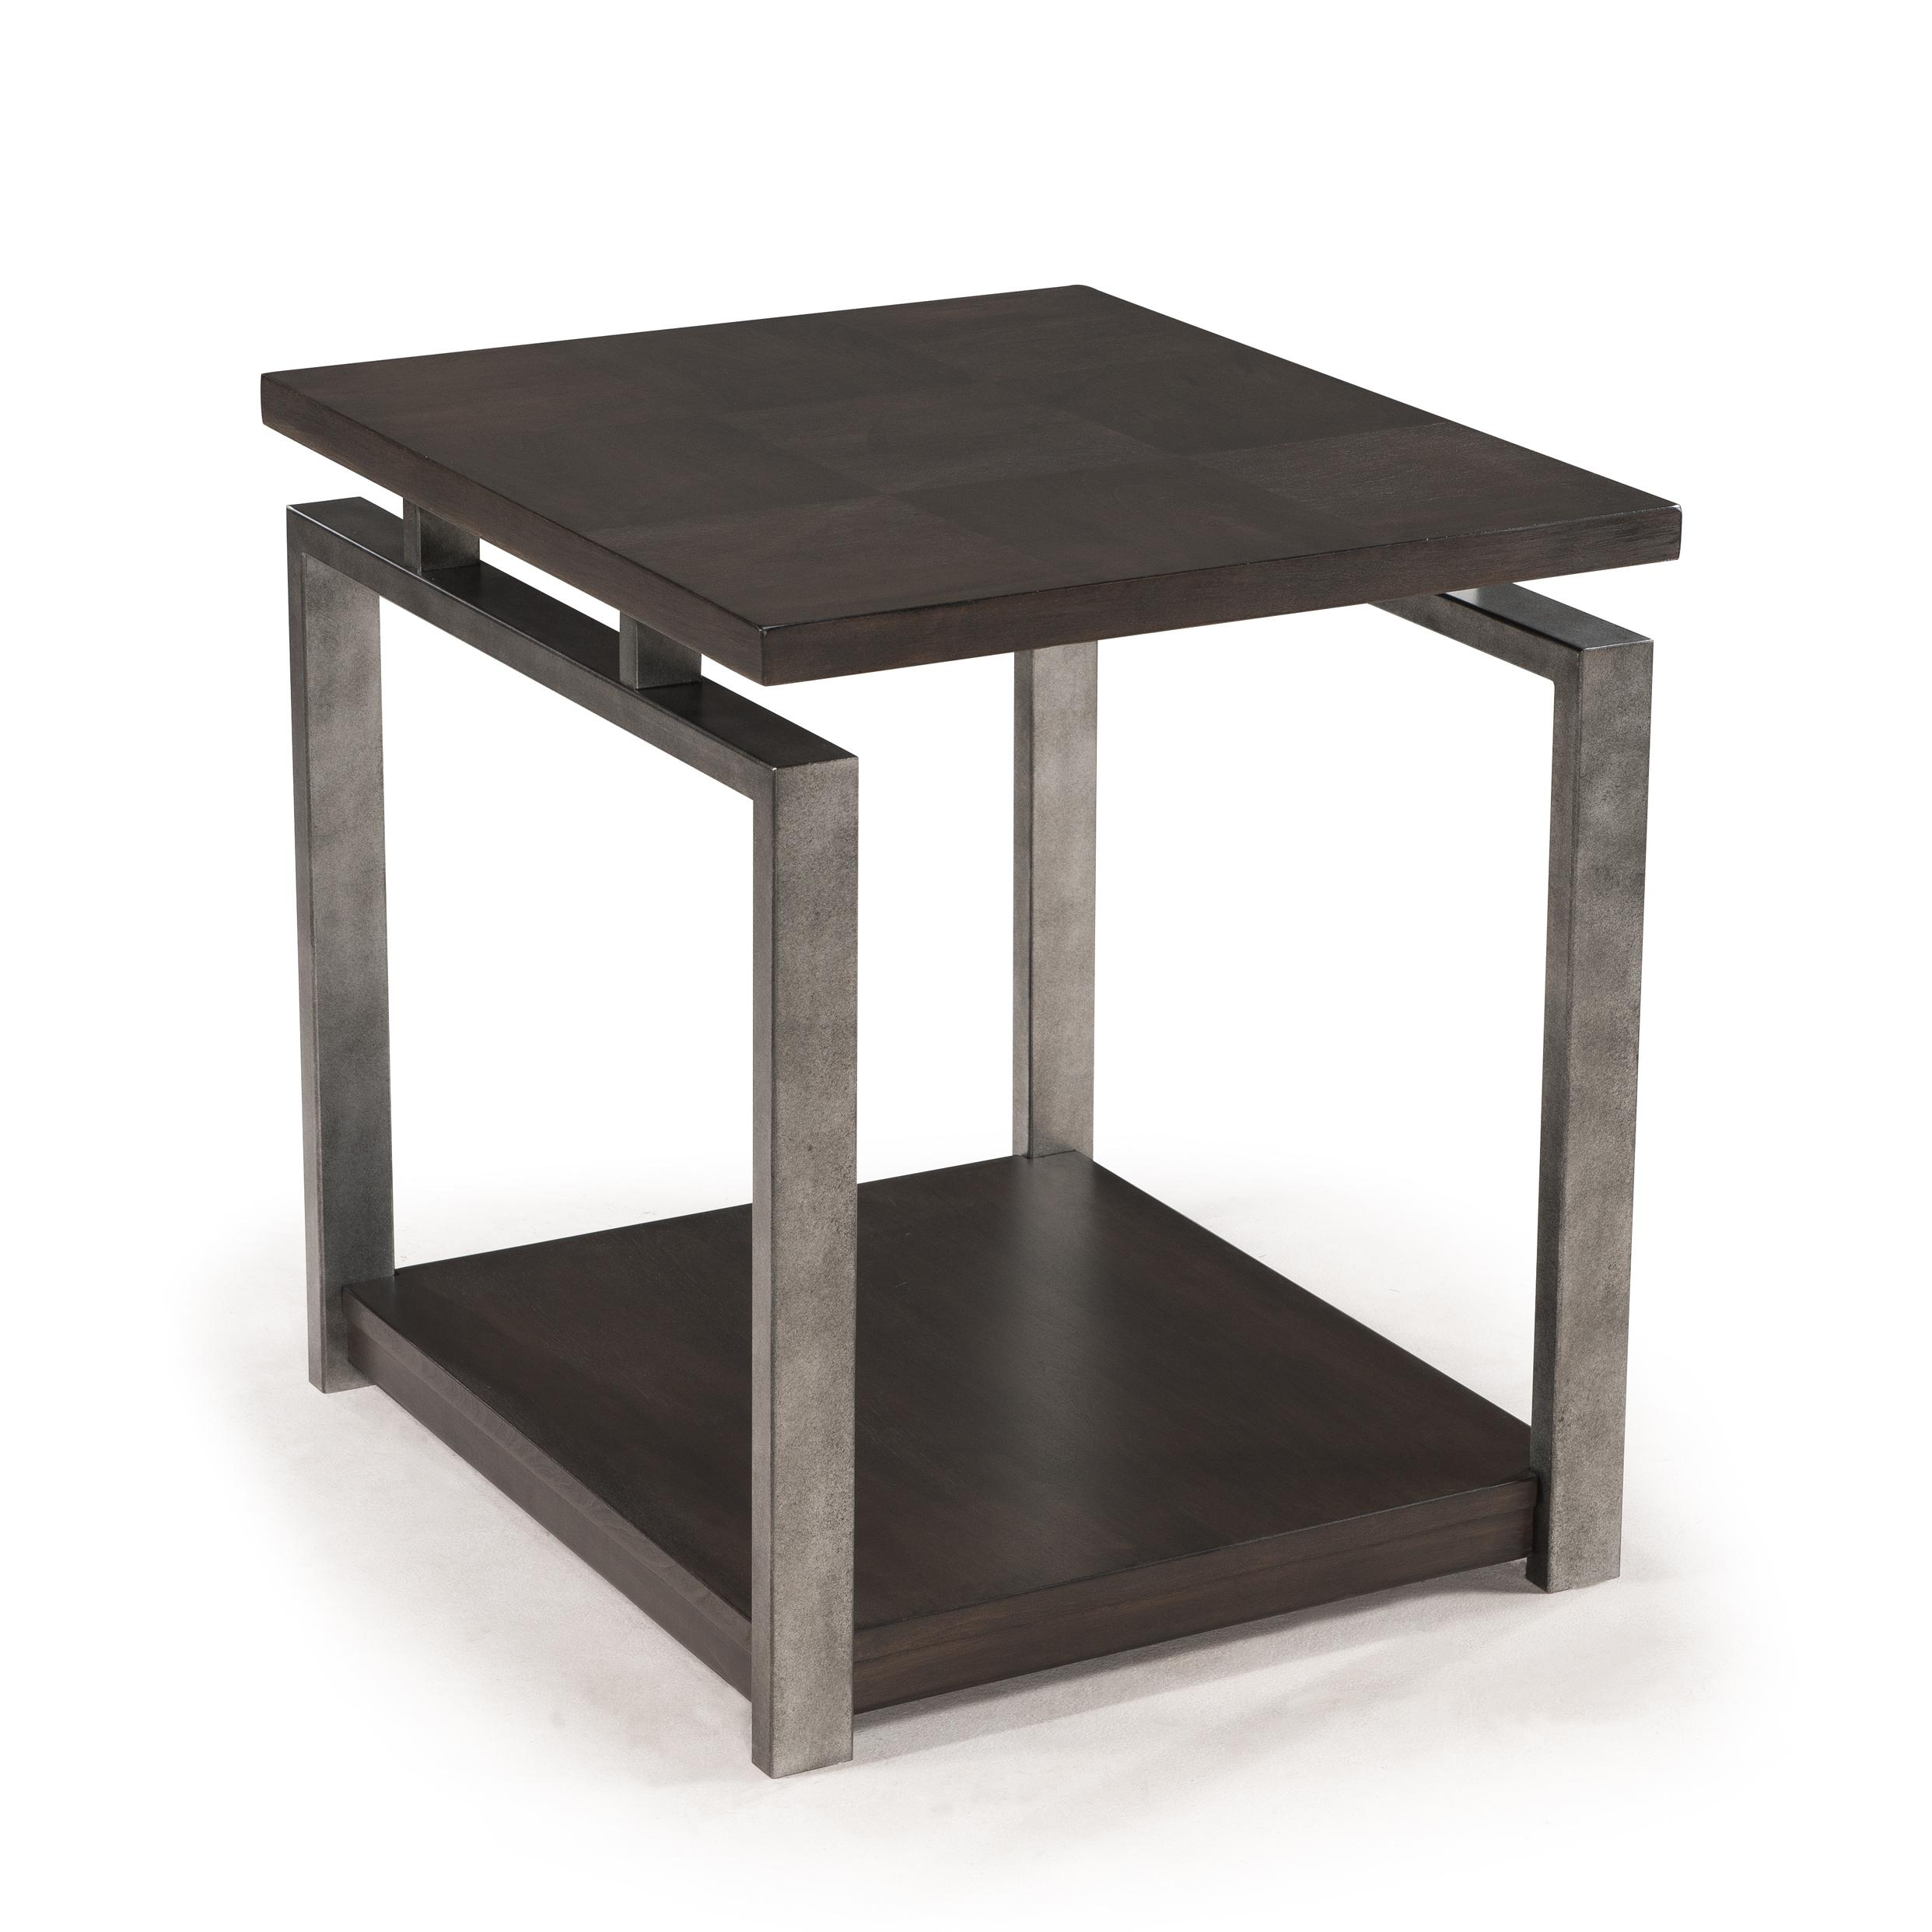 Alton Rectangular End Table by Magnussen Home at Value City Furniture